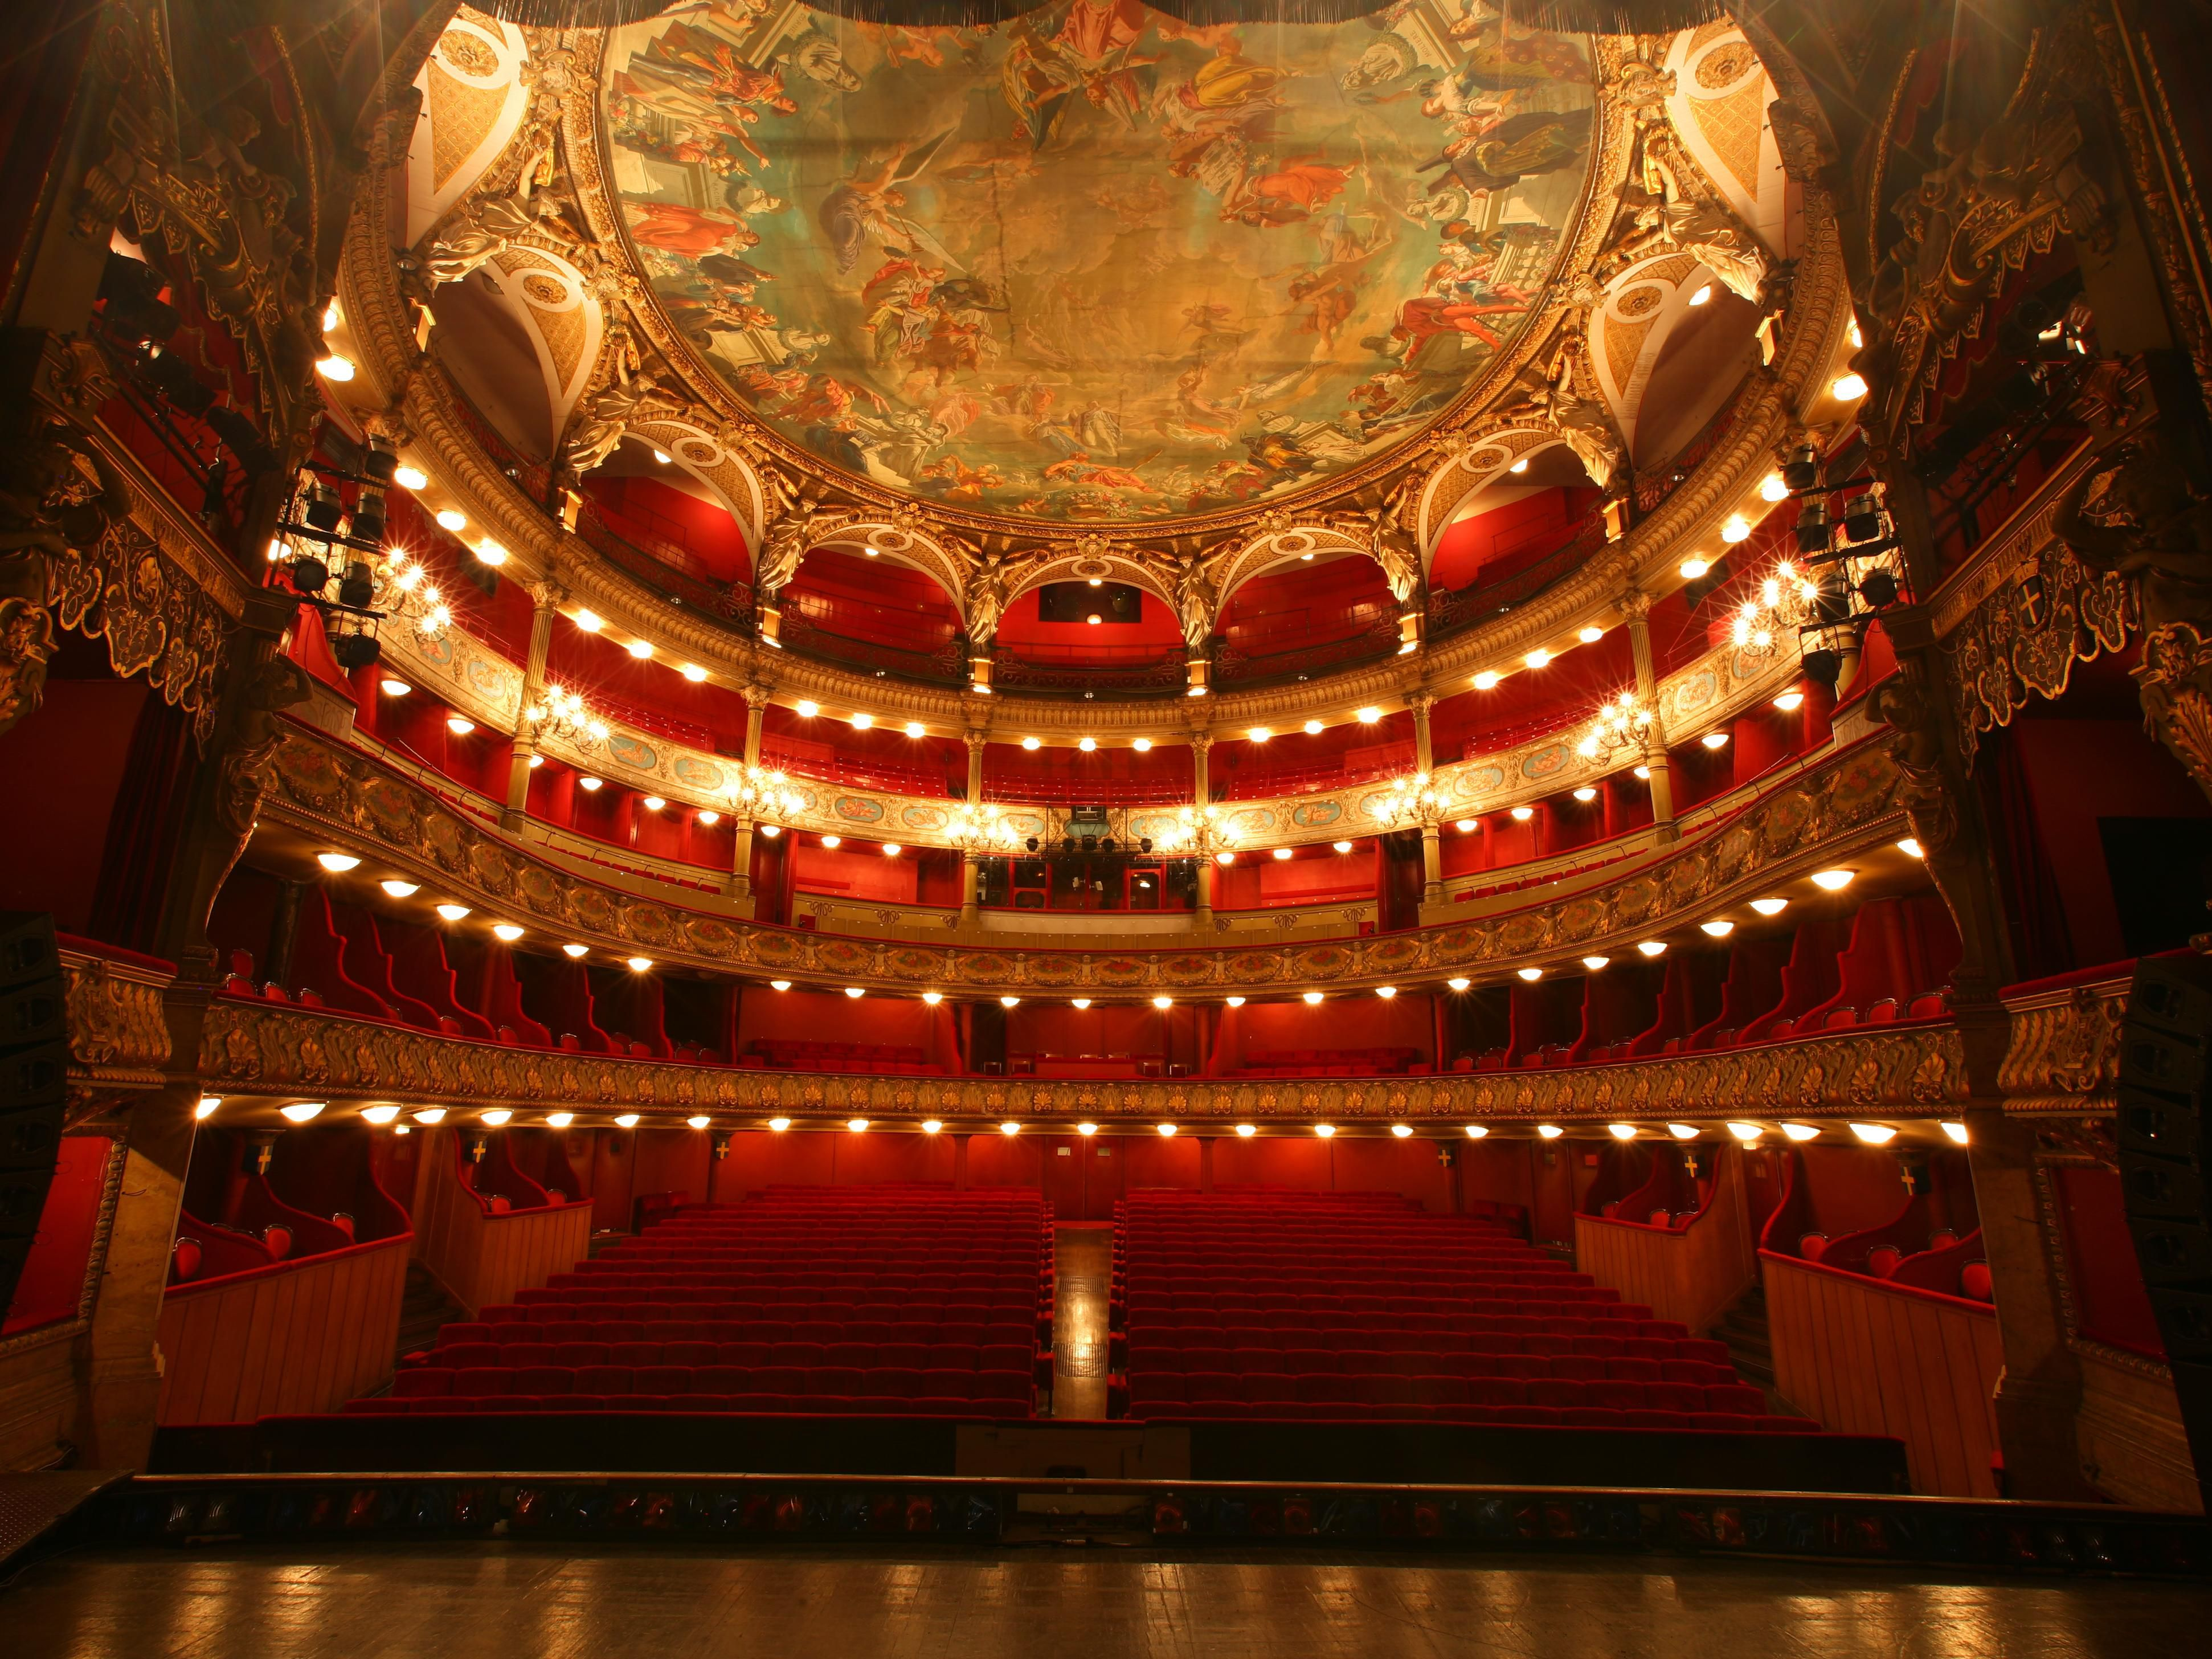 Toulon's beautiful opera is only at 15 minutes walk from our hotel